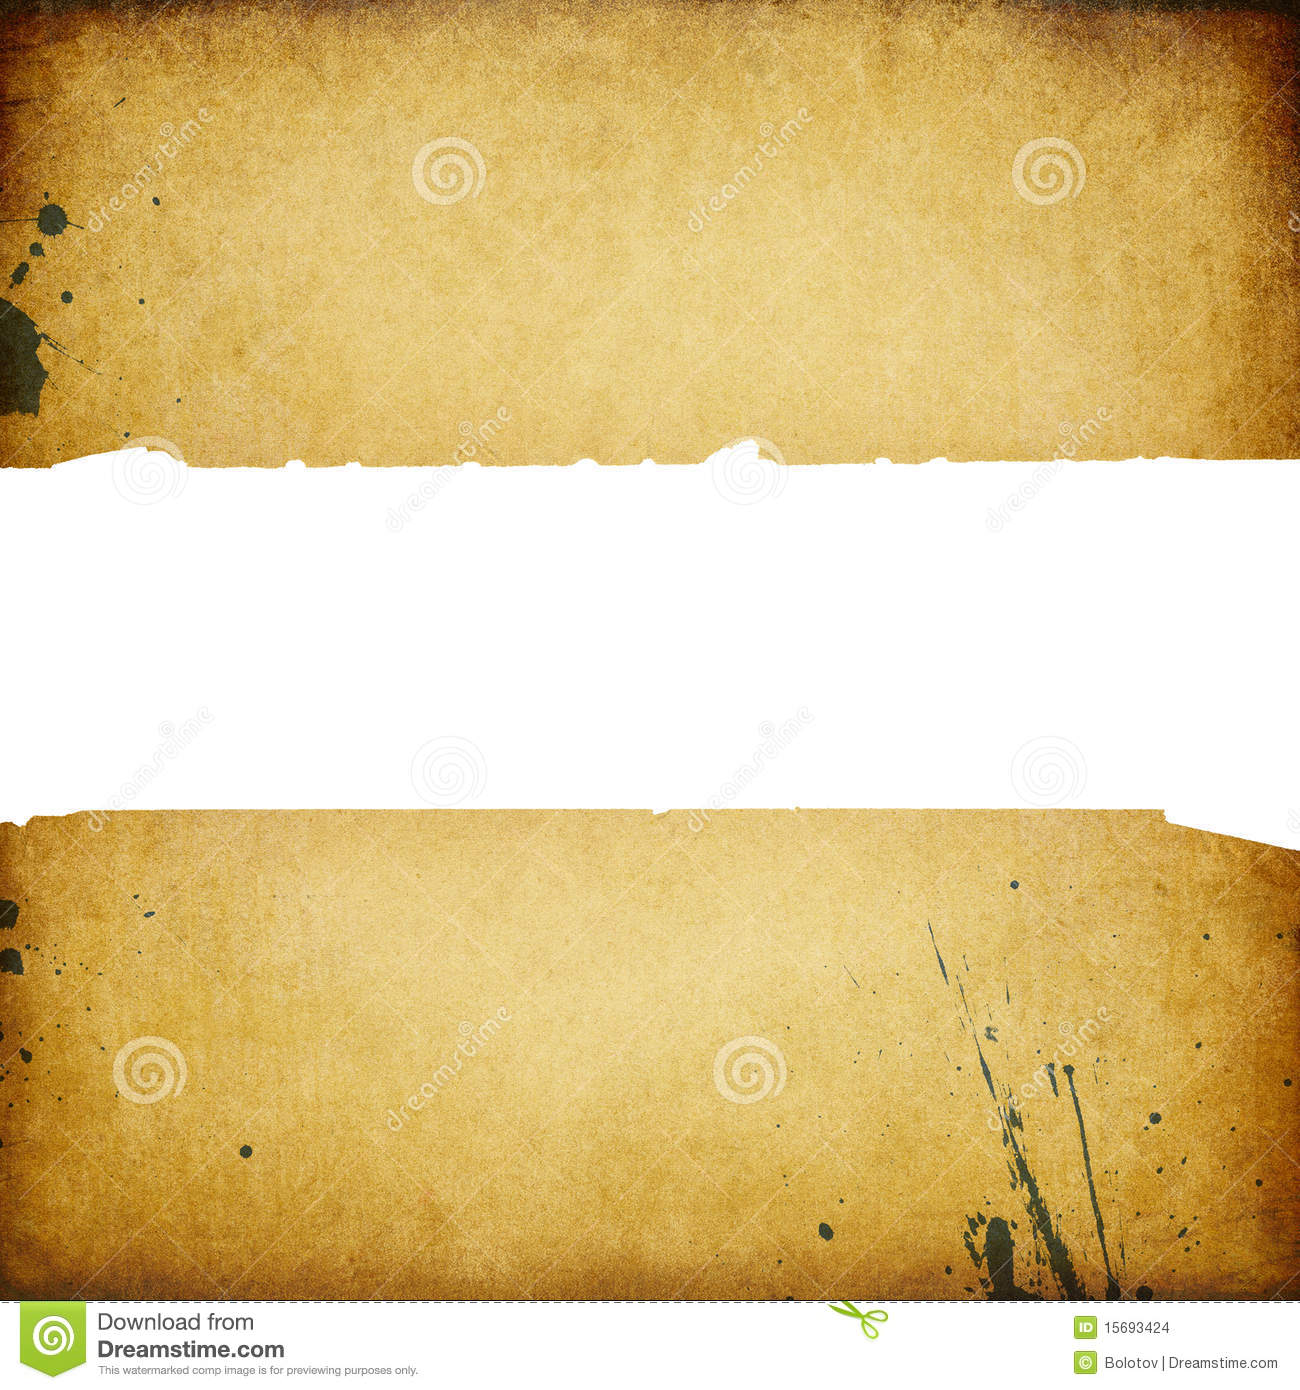 More similar stock images of vintage banner with torn edges